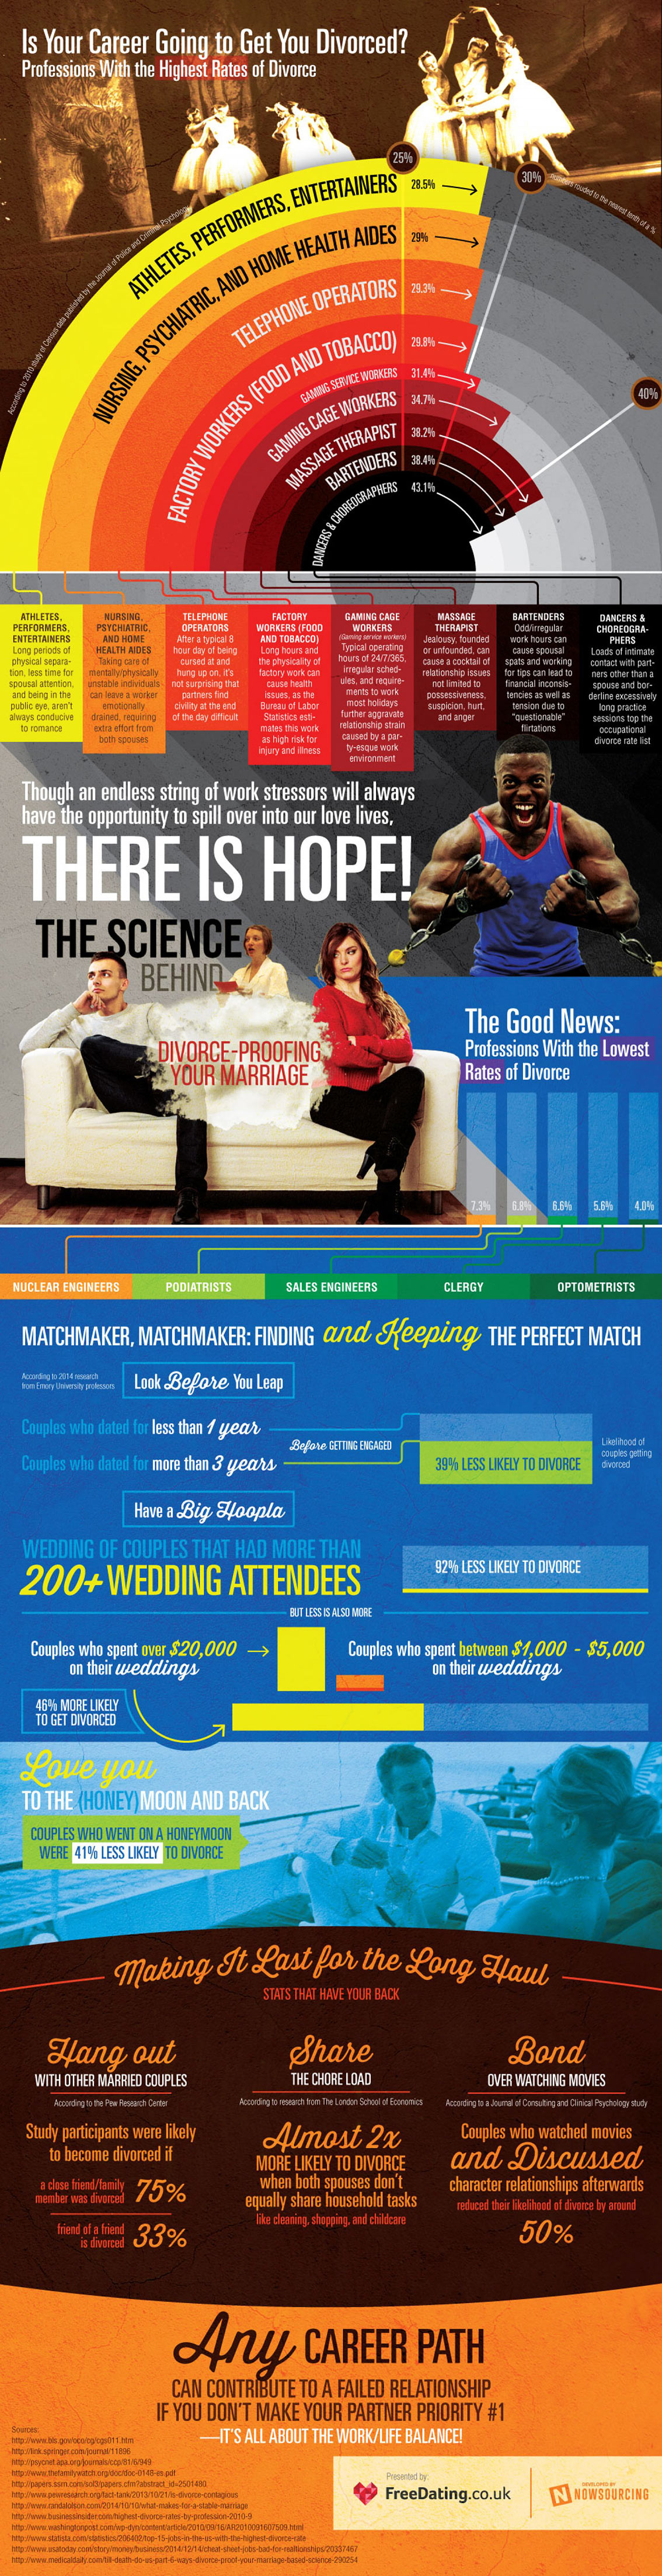 Professions with the Highest and Lowest Rates of Divorce Infographic